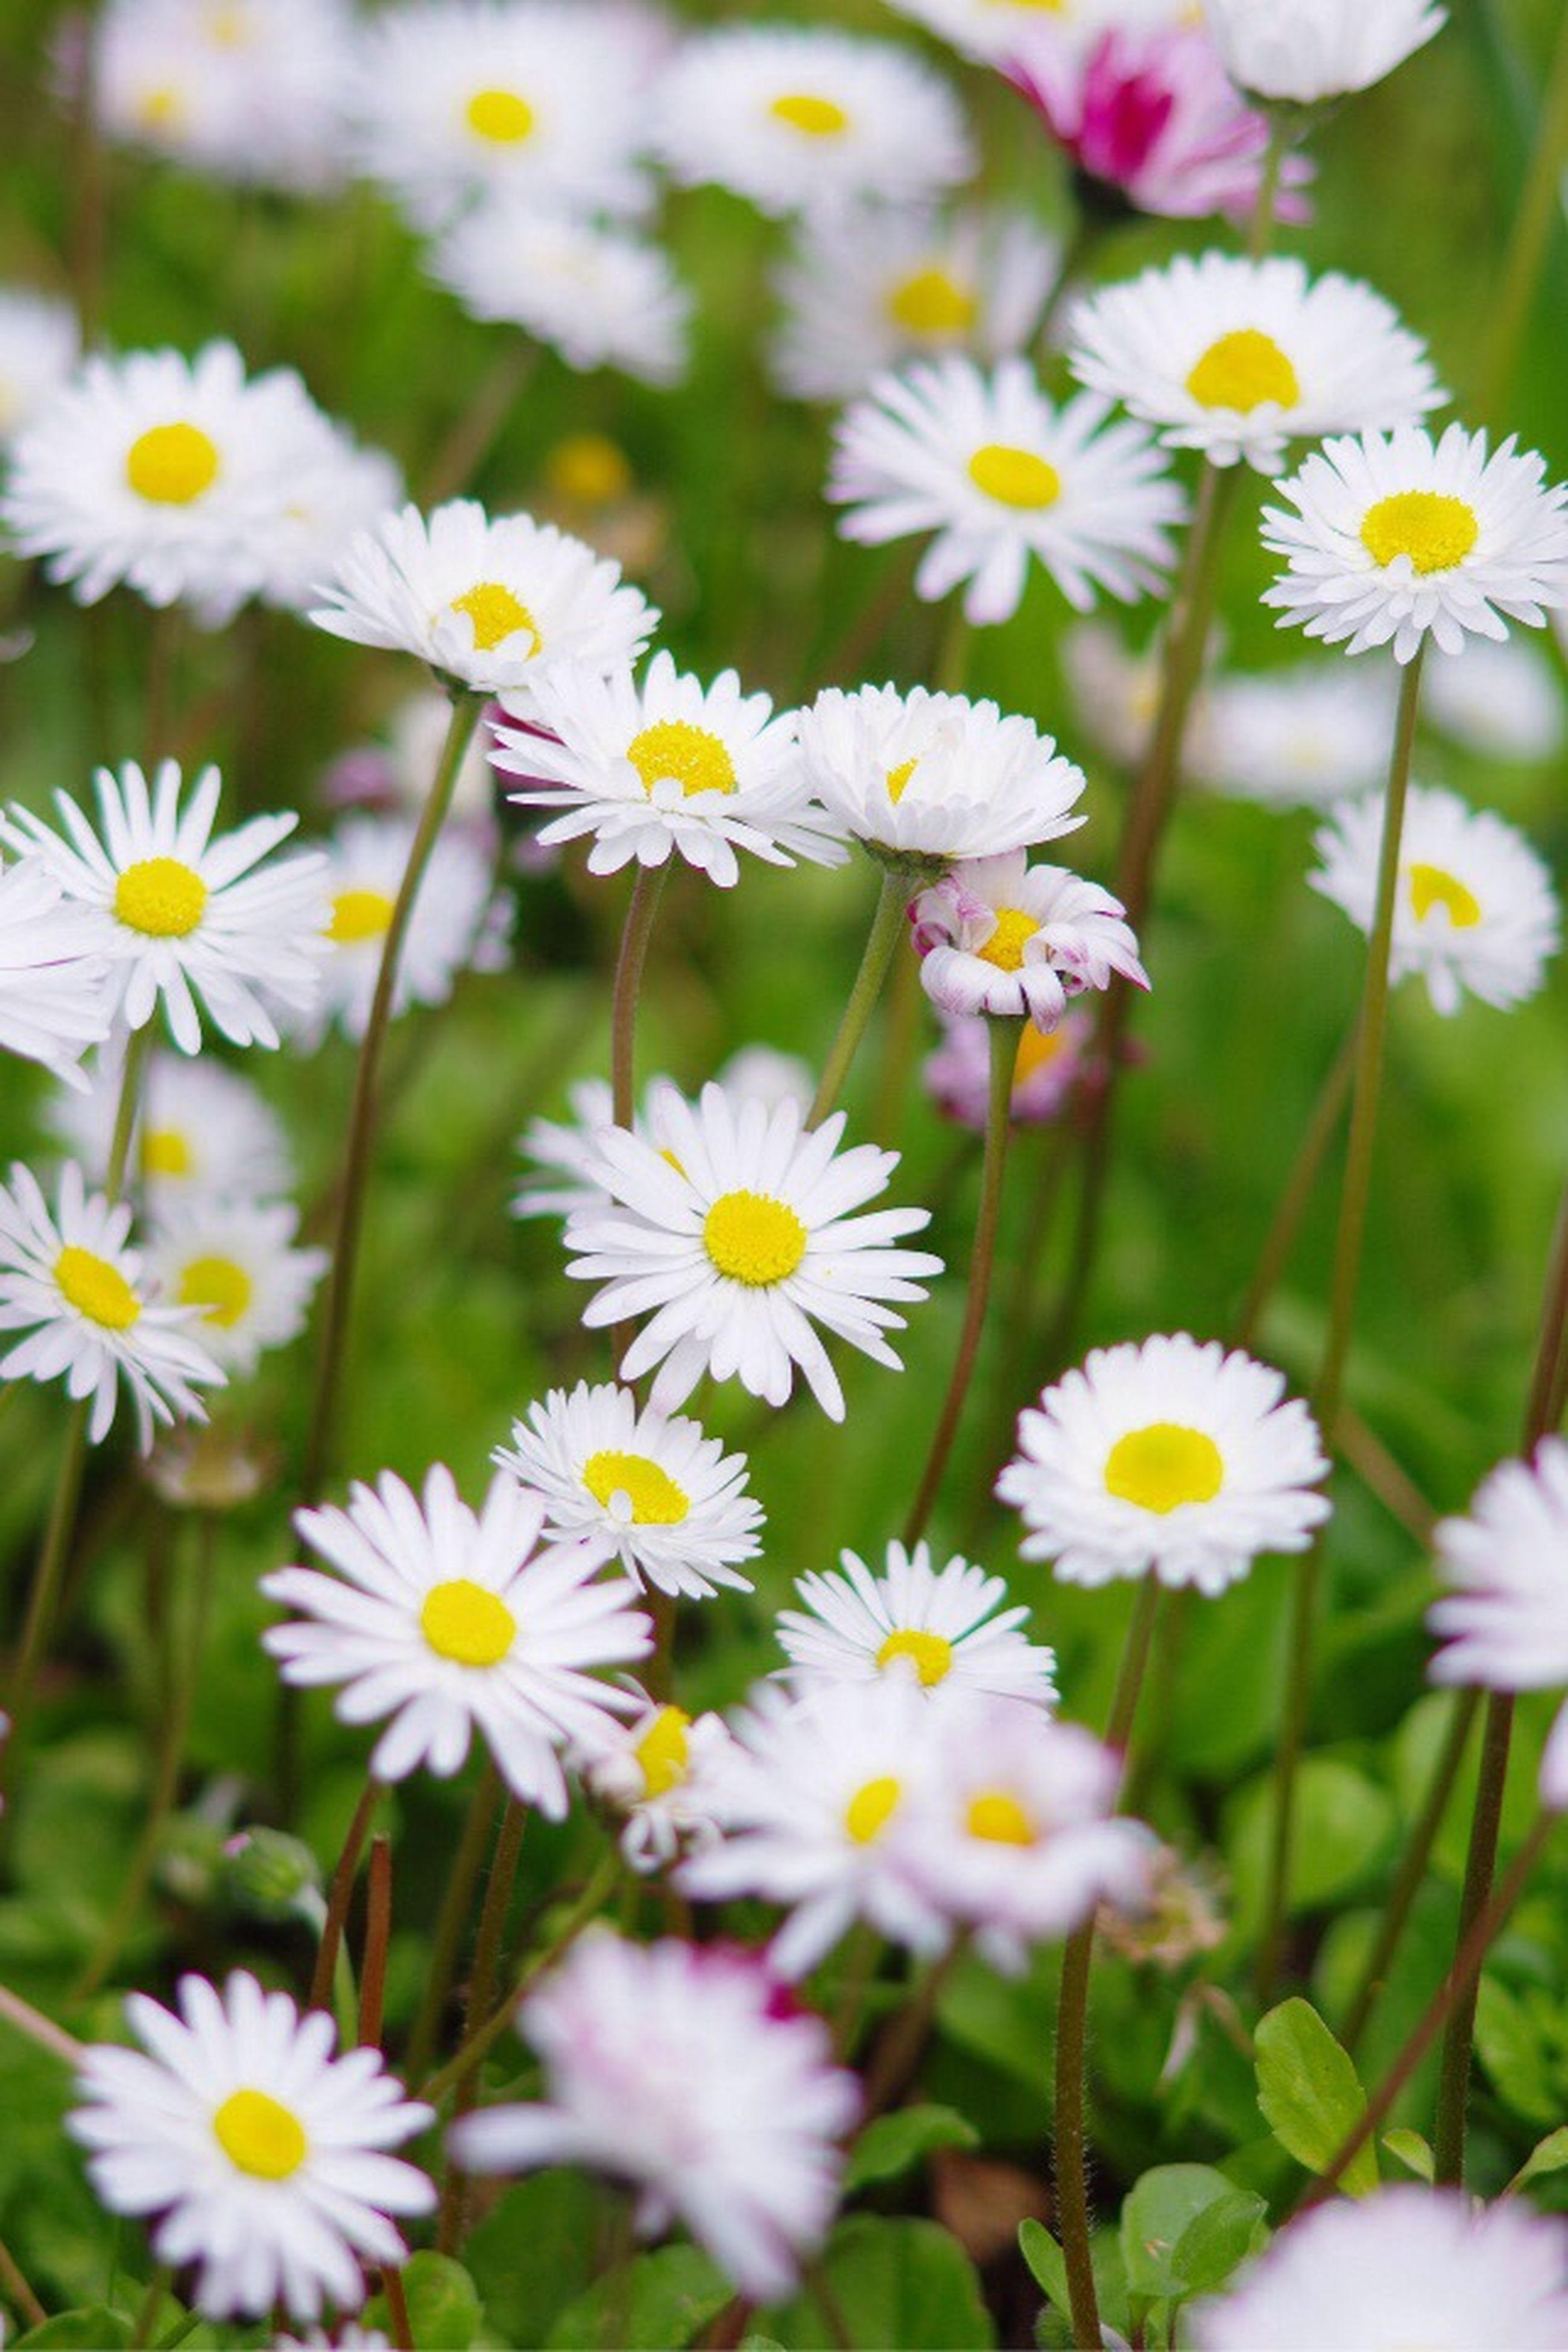 flower, freshness, fragility, white color, petal, growth, daisy, flower head, beauty in nature, blooming, nature, plant, field, focus on foreground, close-up, stem, high angle view, in bloom, day, wildflower